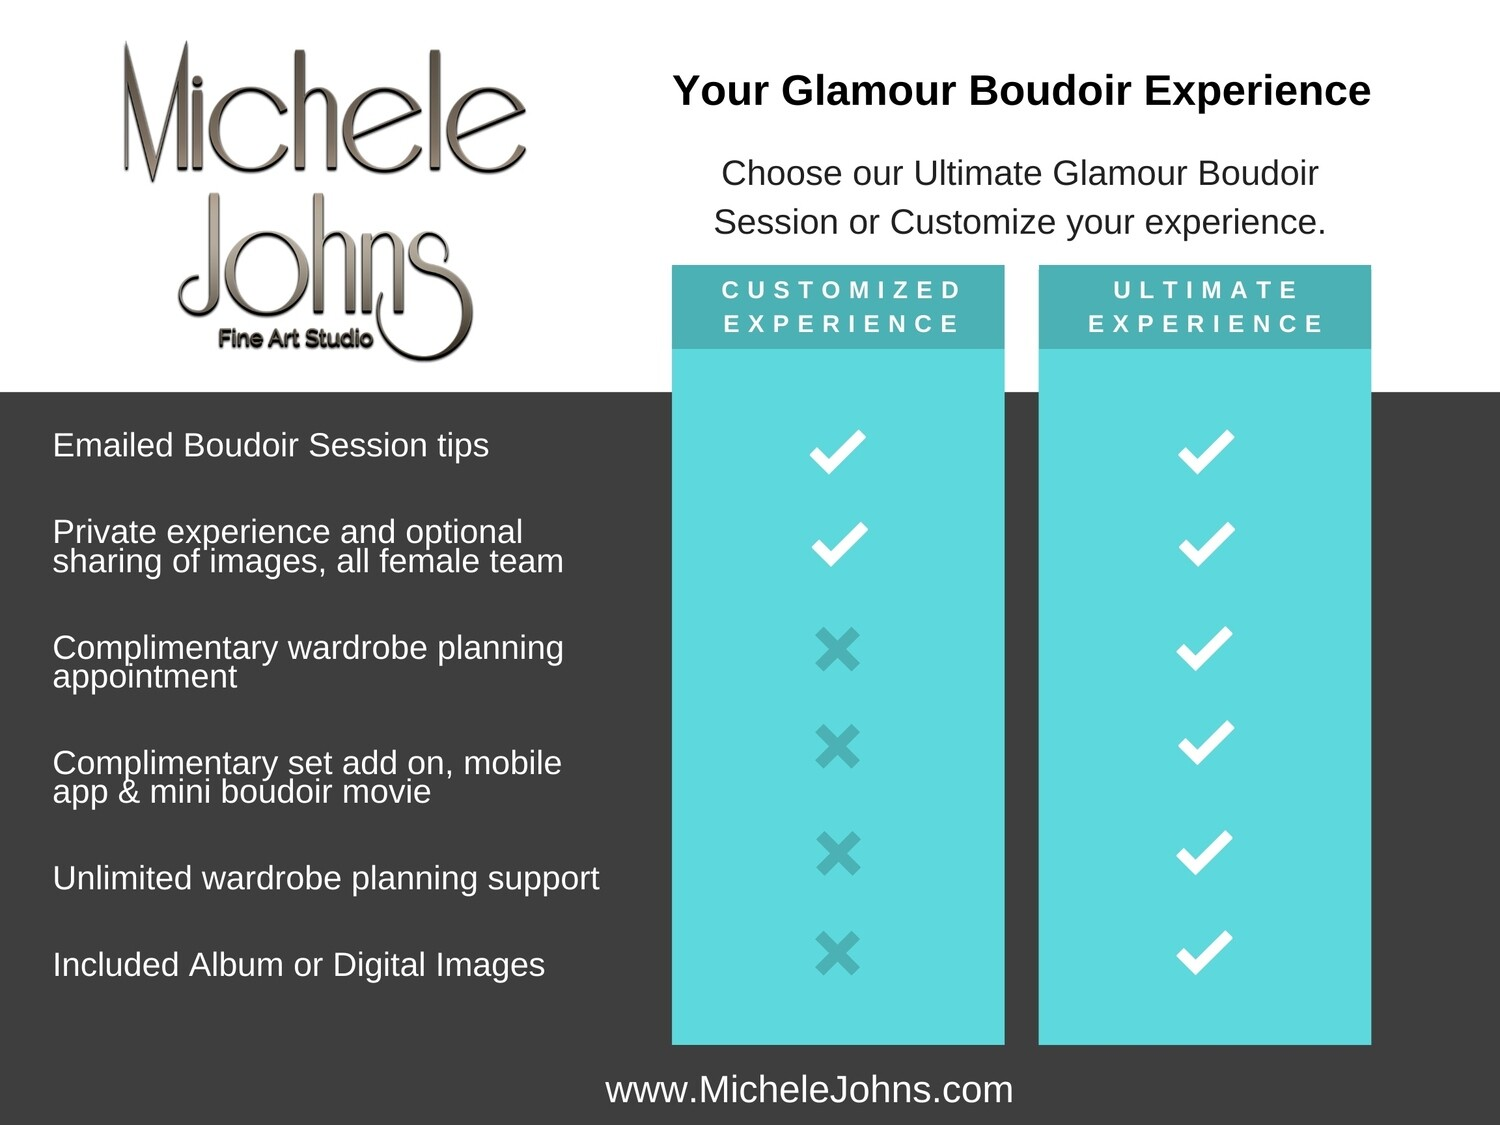 SEE YOURSELF DIFFERENTLY - Customize Your Classic Boudoir Experience